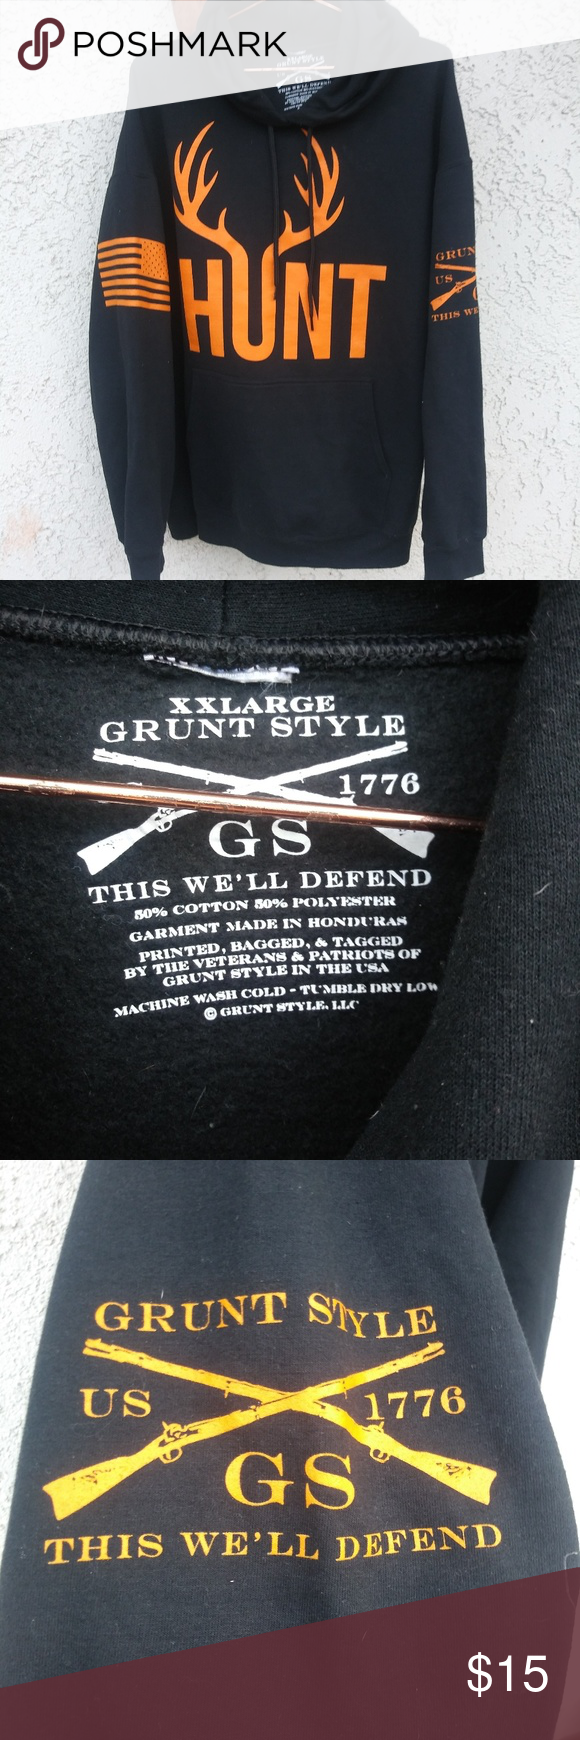 1119a0a248cef Grunt Style HUNT hoodie Grunt Style hoodie with the words hunt printed on  the front and